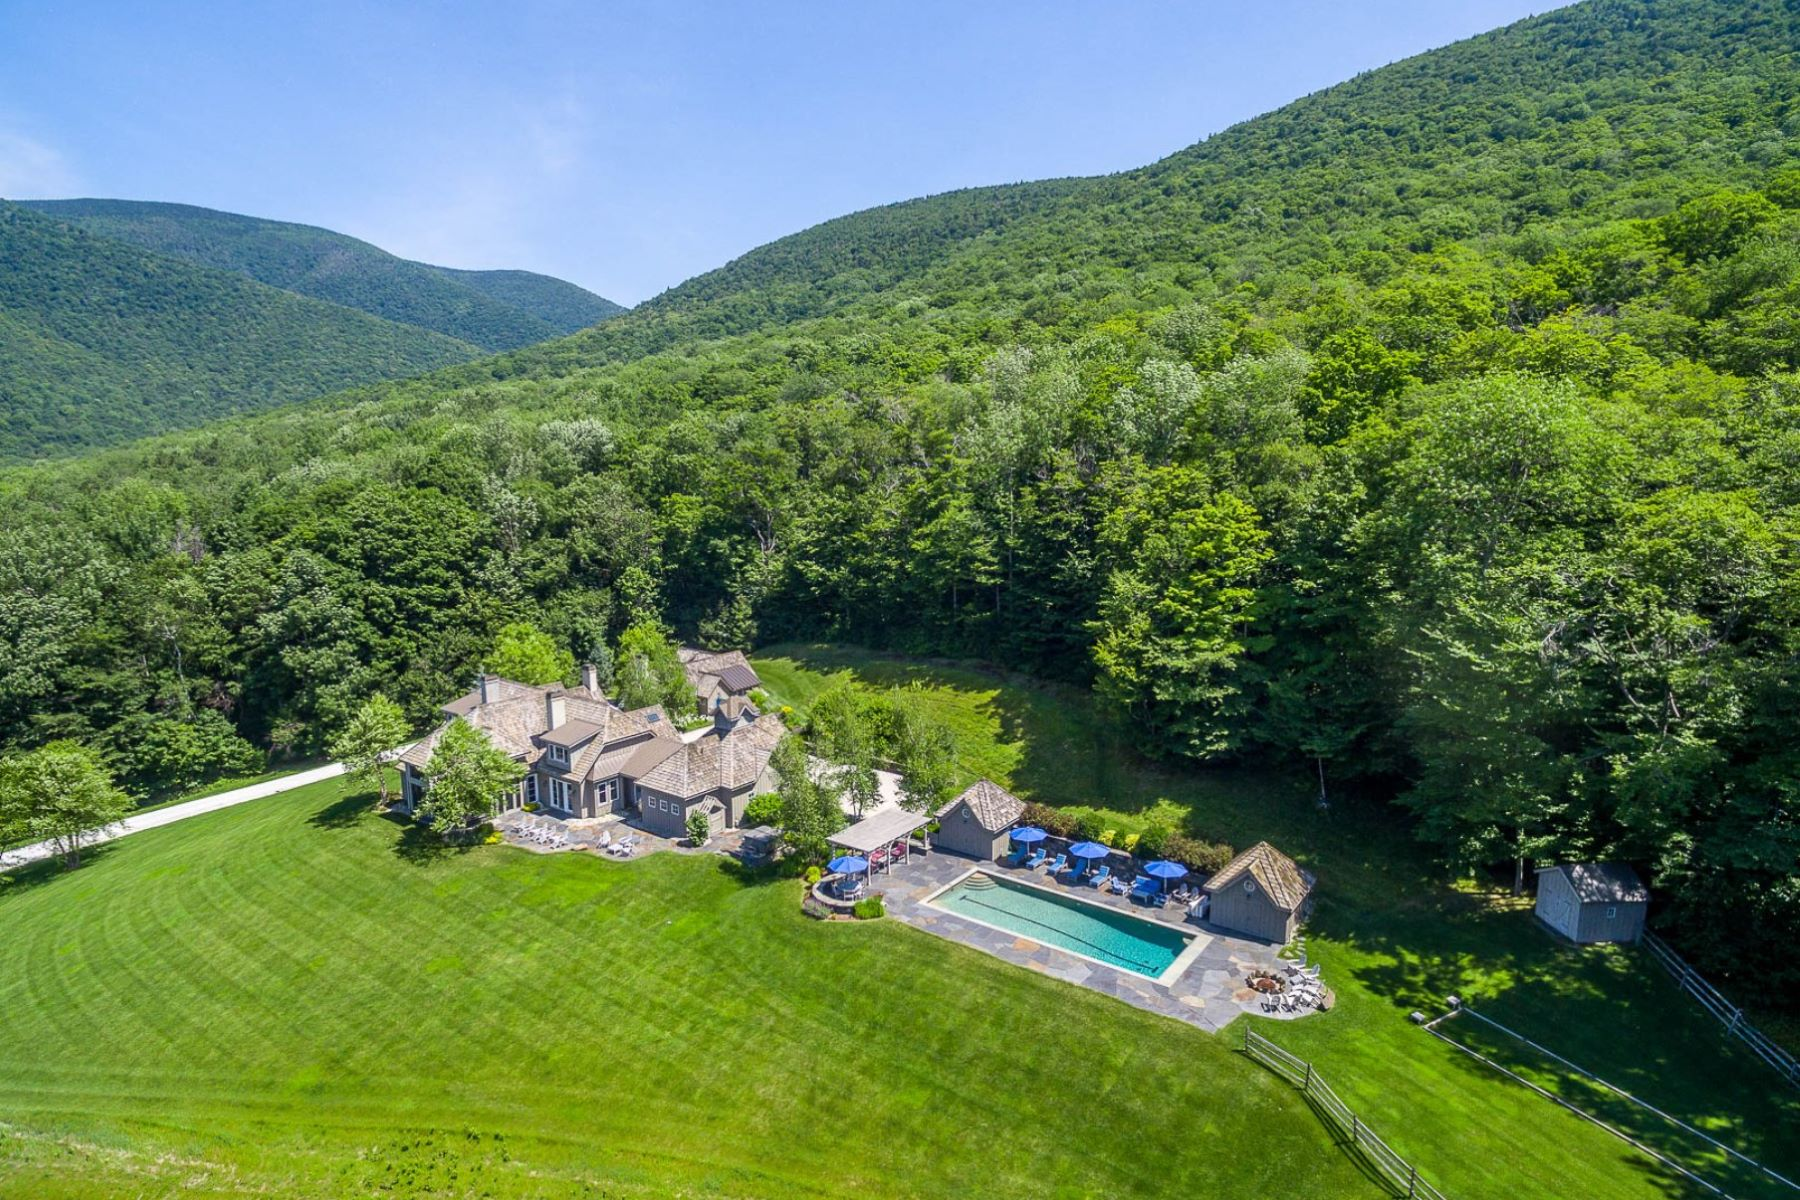 Villa per Vendita alle ore Top Of The World Views 190 Turkey Run Ln Dorset, Vermont, 05251 Stati Uniti